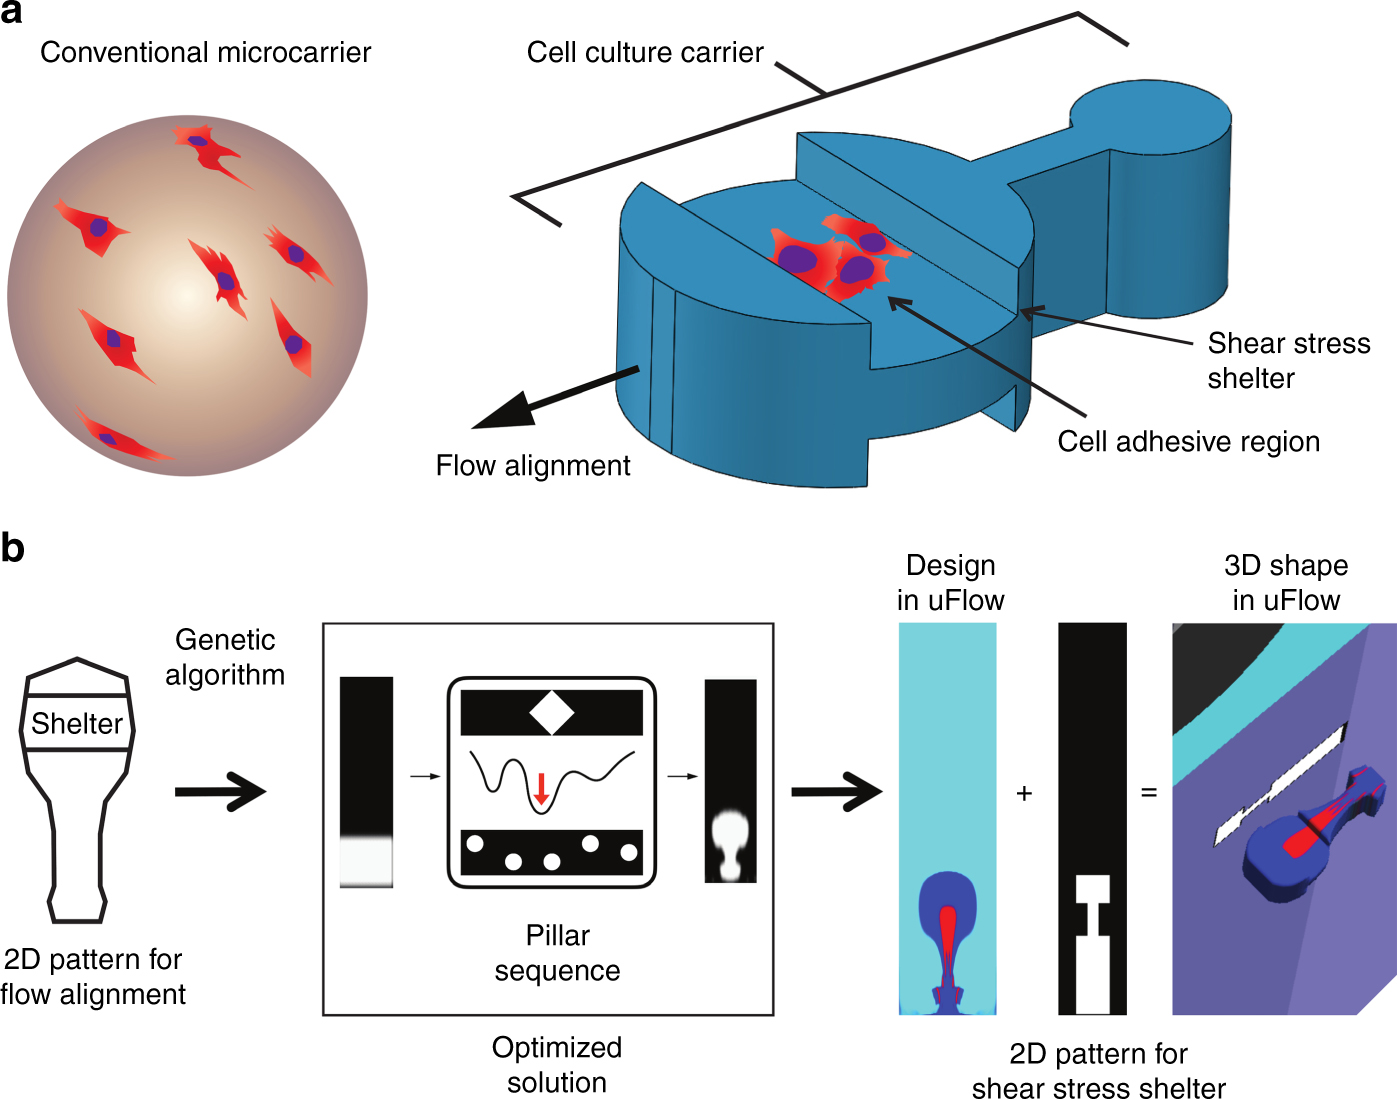 Shaped 3D microcarriers for adherent cell culture and analysis